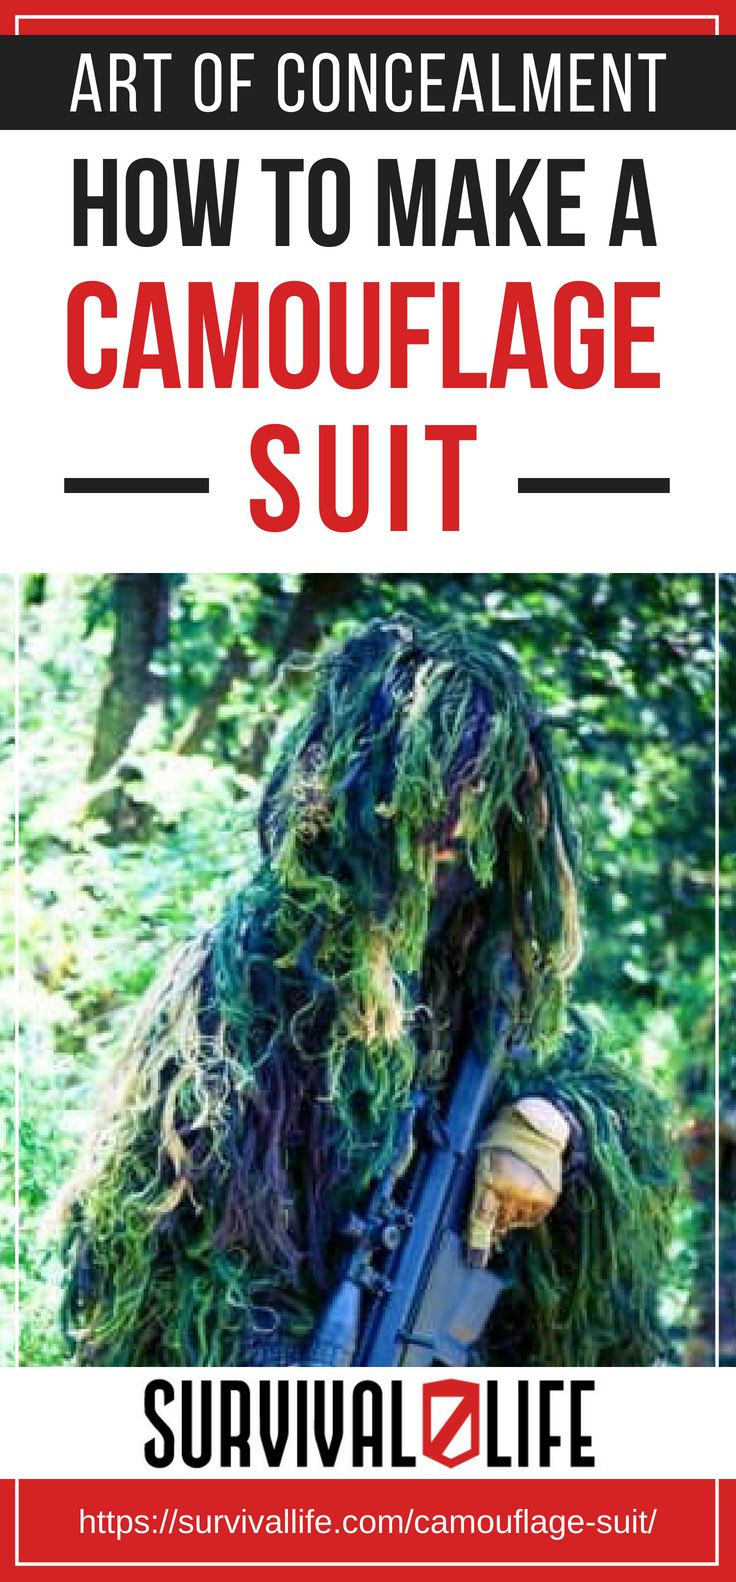 Placard | Art of Concealment | How To Make A Camouflage Suit